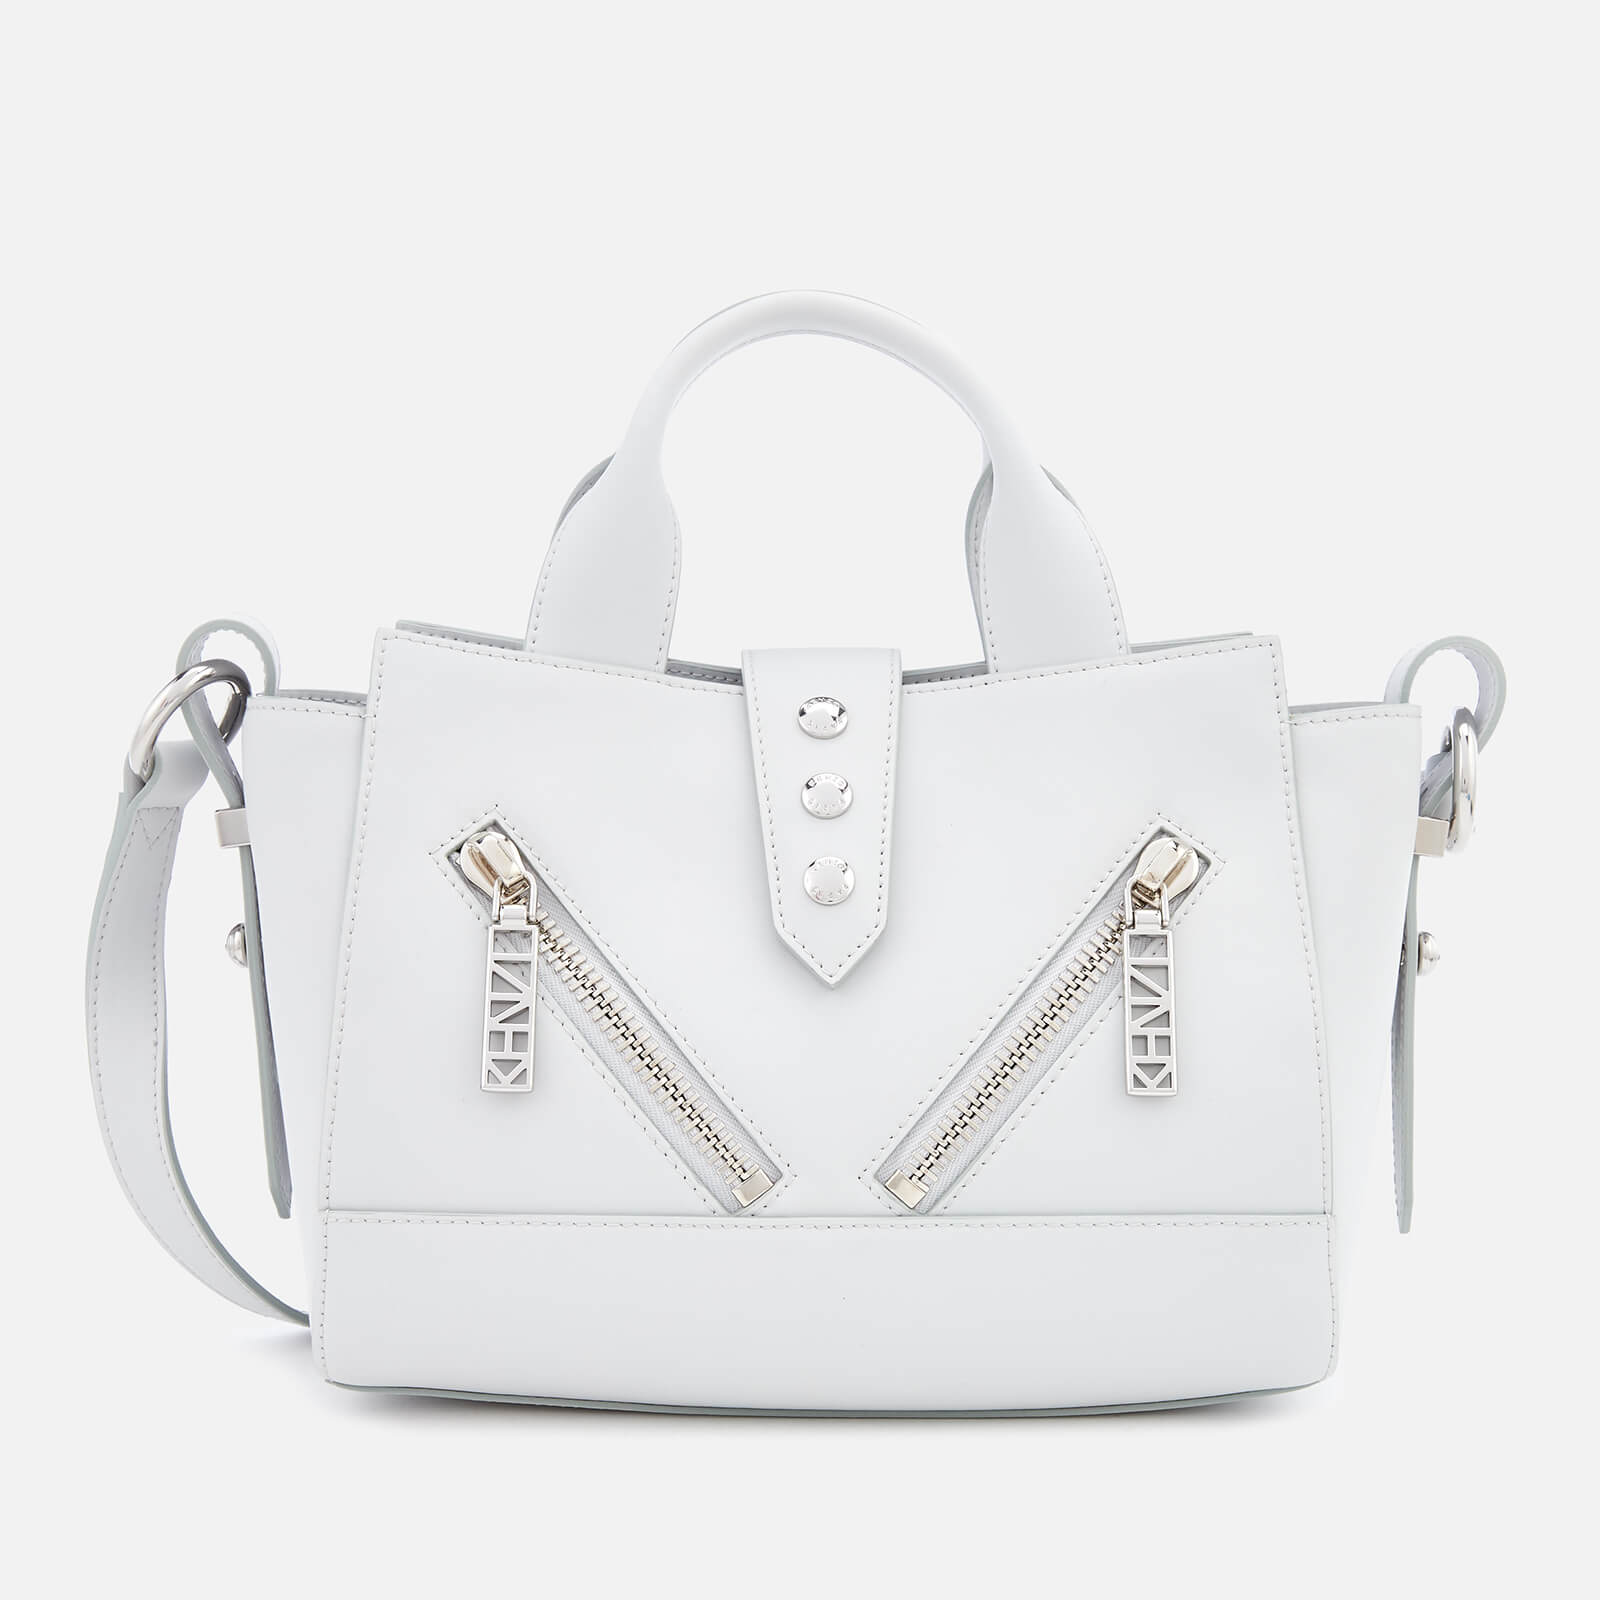 6a604e9c73a KENZO Women's Mini Kalifornia Tote Bag - Pale Grey - Free UK Delivery over  £50